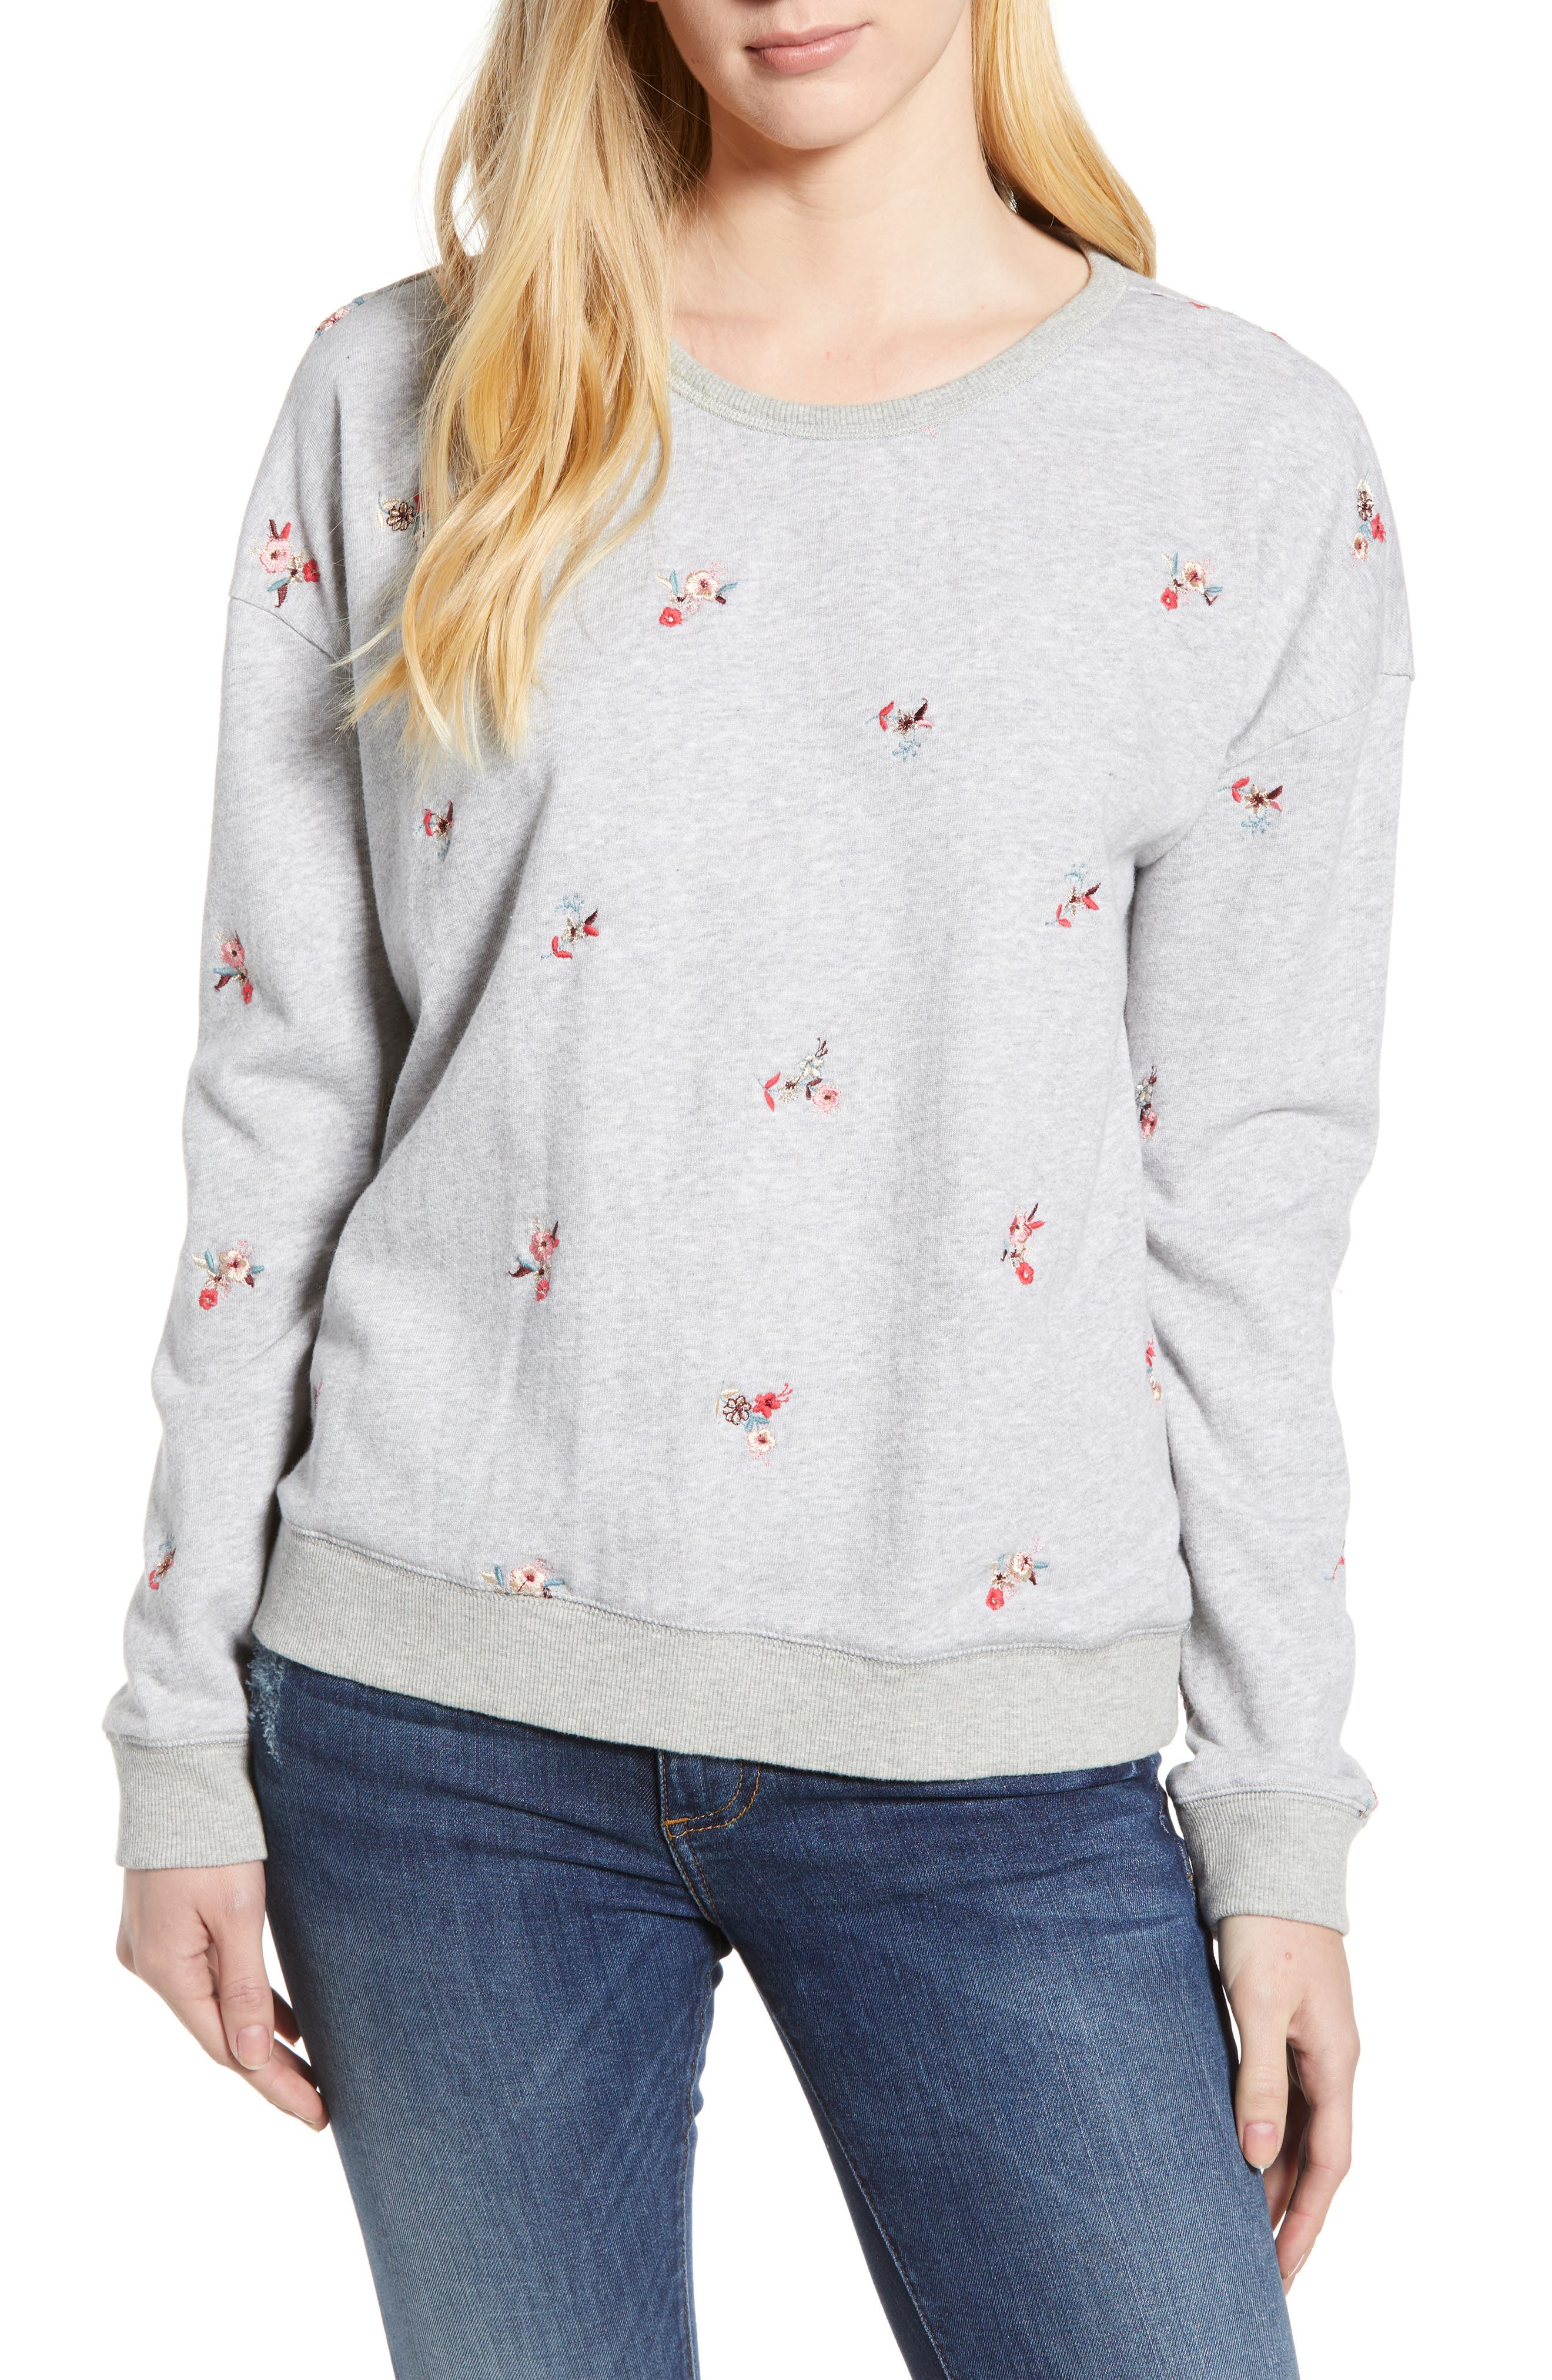 Embroidered Flowers Sweatshirt,                         Main,                         color, 030